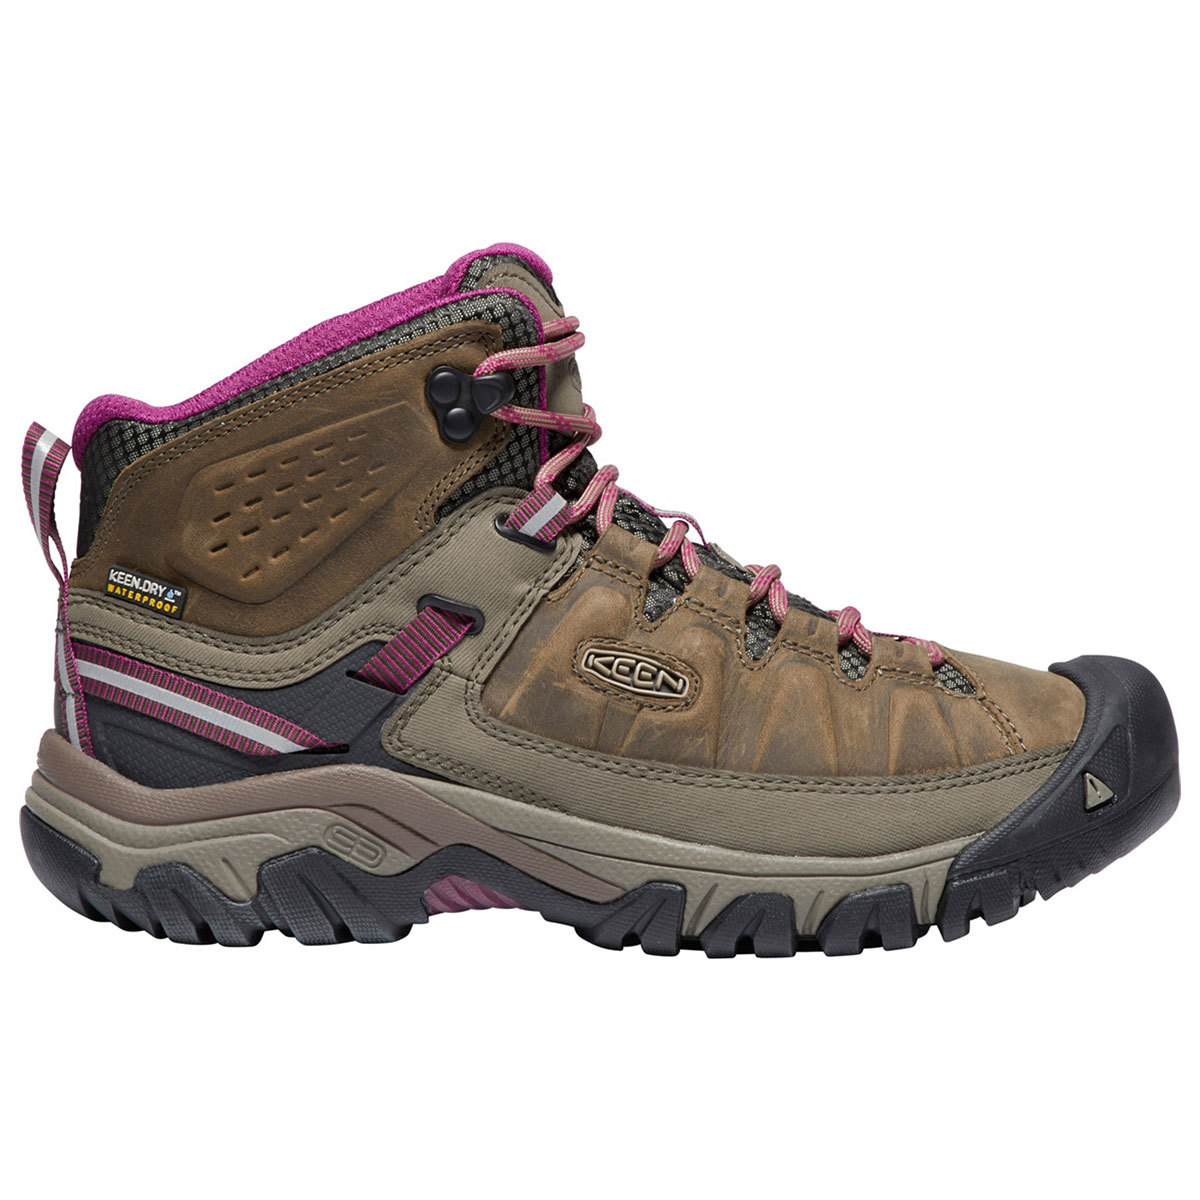 Keen Women's Targhee Iii Waterproof Mid Hiking Boots - Brown, 7.5